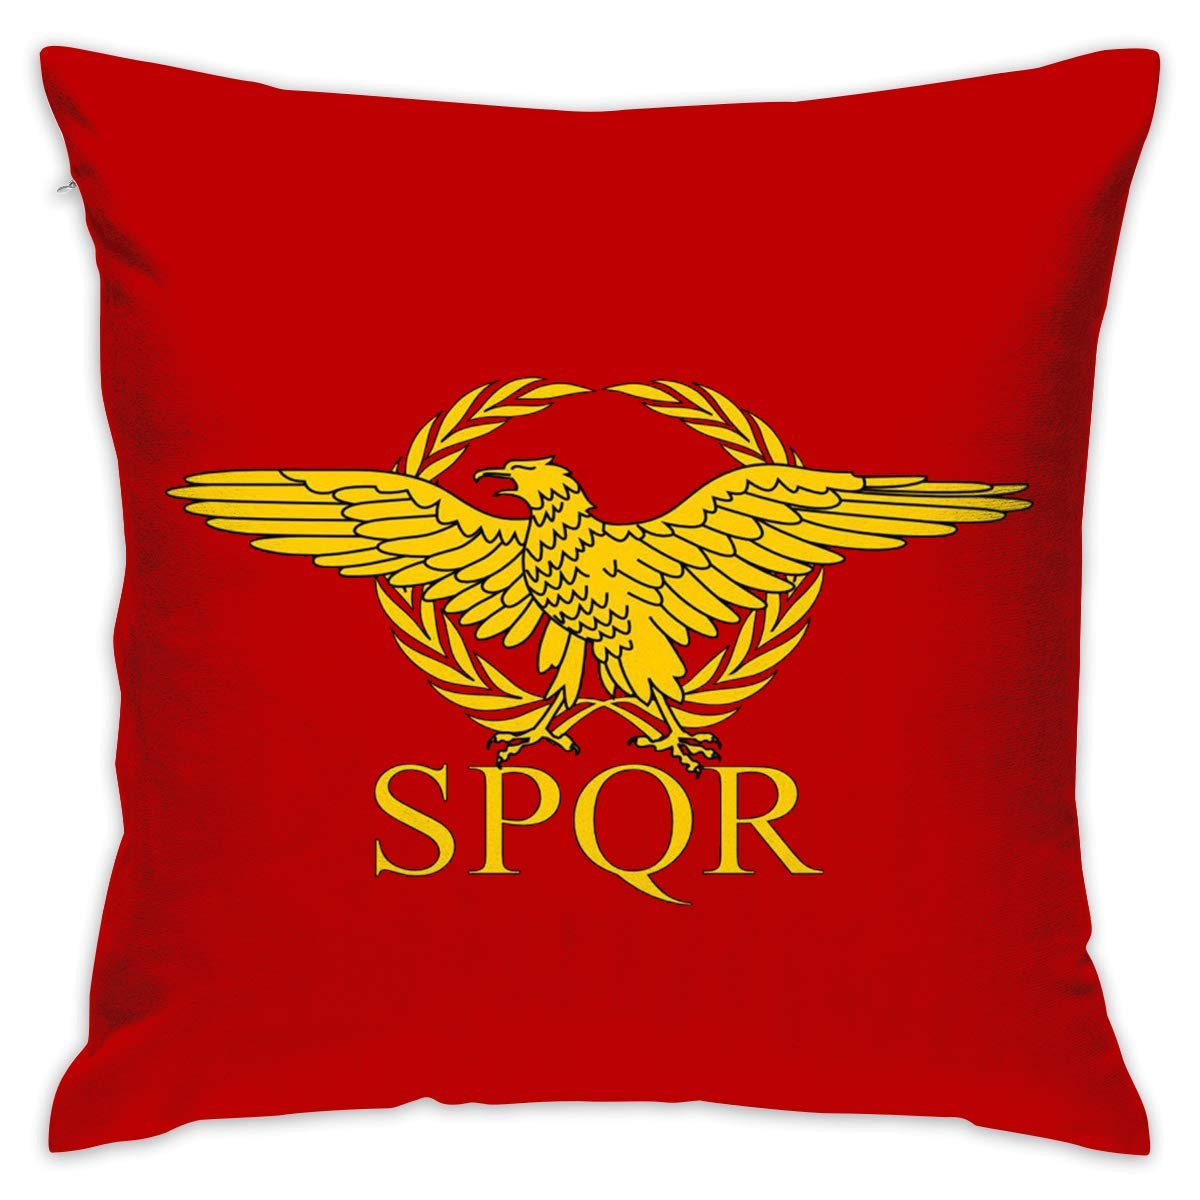 CrownLiny Roman Empire Senate and People of Rome Flag Sofa Cushions Covers Couch Pillows Shams Pillowcase